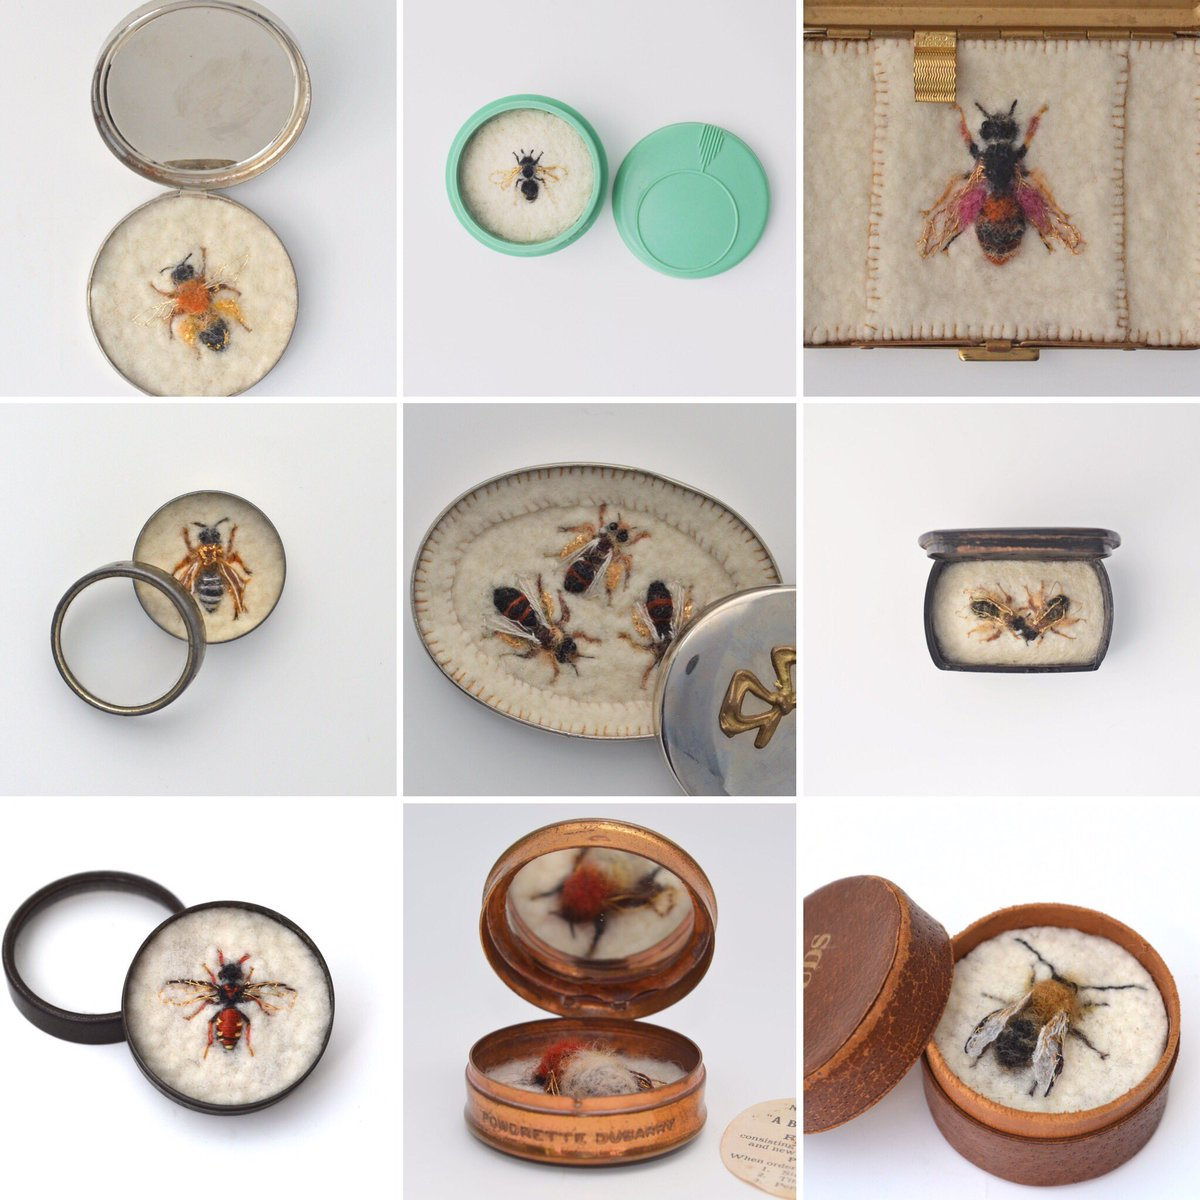 LAST THREE DAYS to see #FIFTYBEES: The #Interconnectedness of All Things at @ACEartsSomerset in #Somerton - all about #ecology and #bees <br>http://pic.twitter.com/BdcbyOfvGf